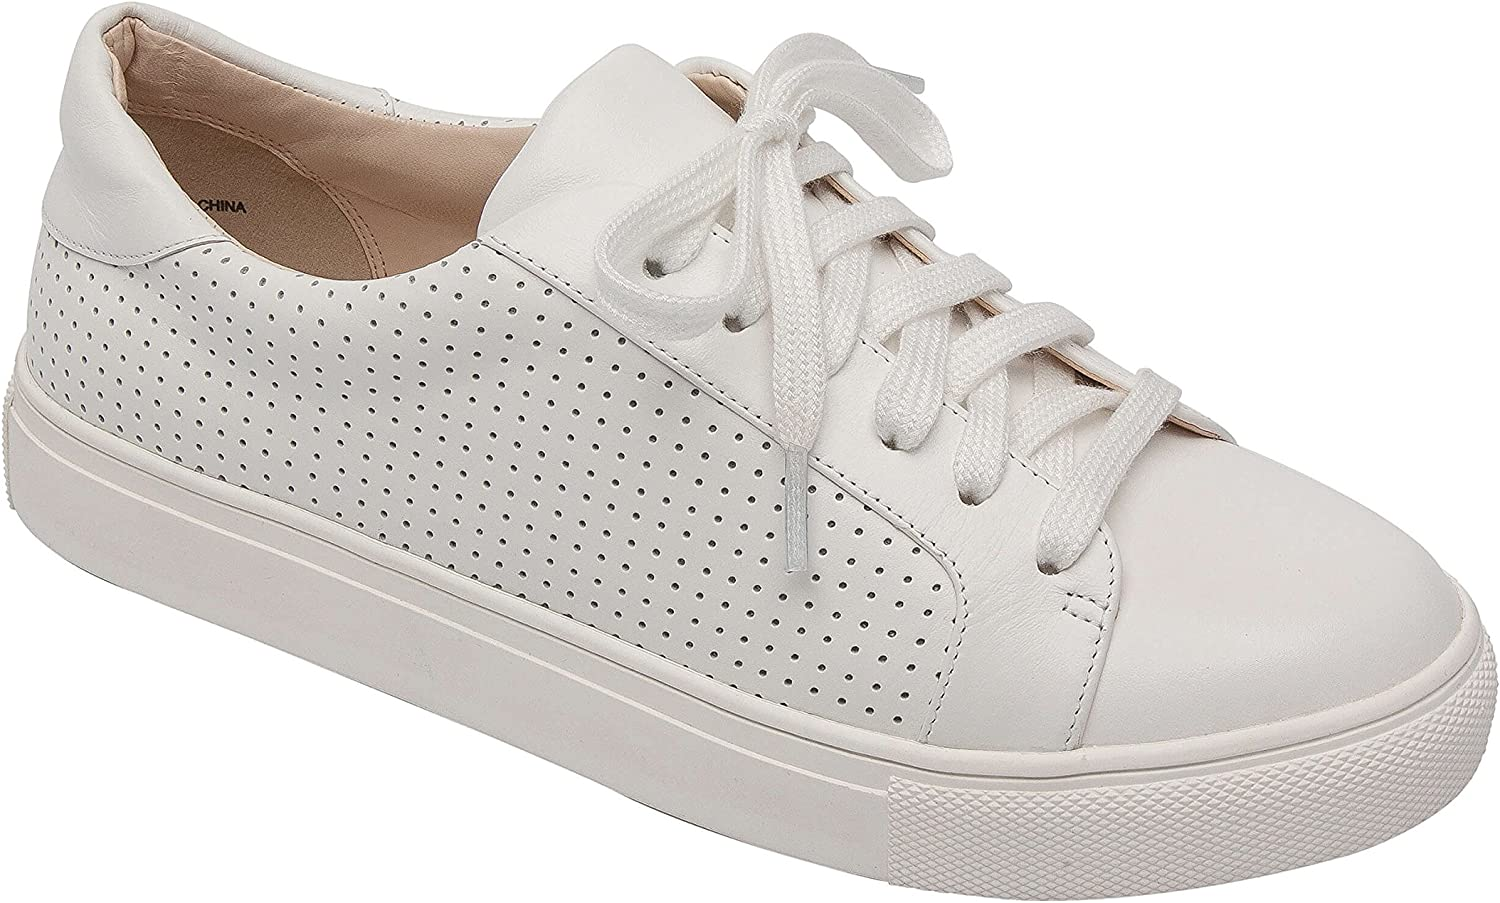 Pic & Pay OLLYN   Women's Lace-Up Perforated Leather or Suede Comfortable Fashion Sneaker White Leather 5.5M